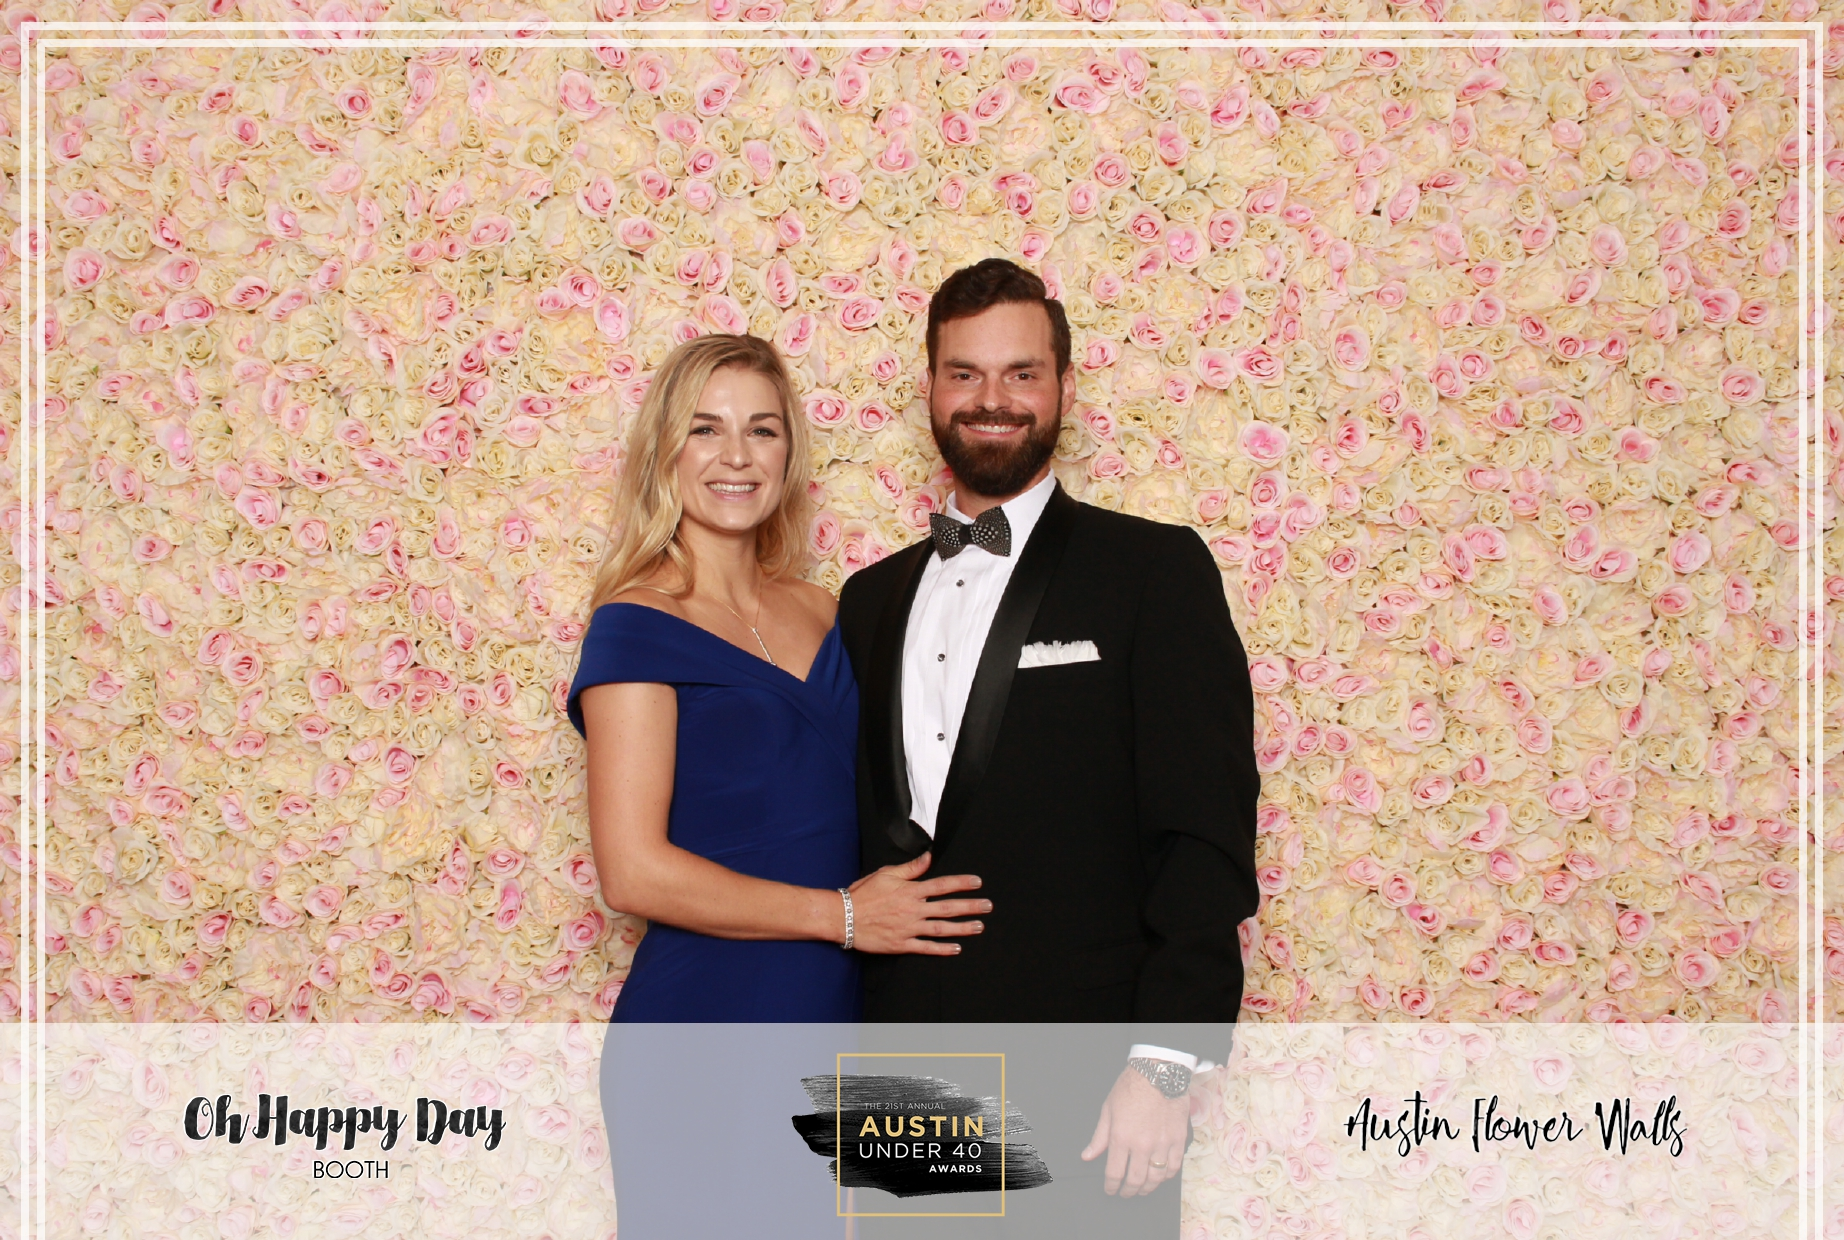 Oh Happy Day Booth - Austin Under 40-48.jpg